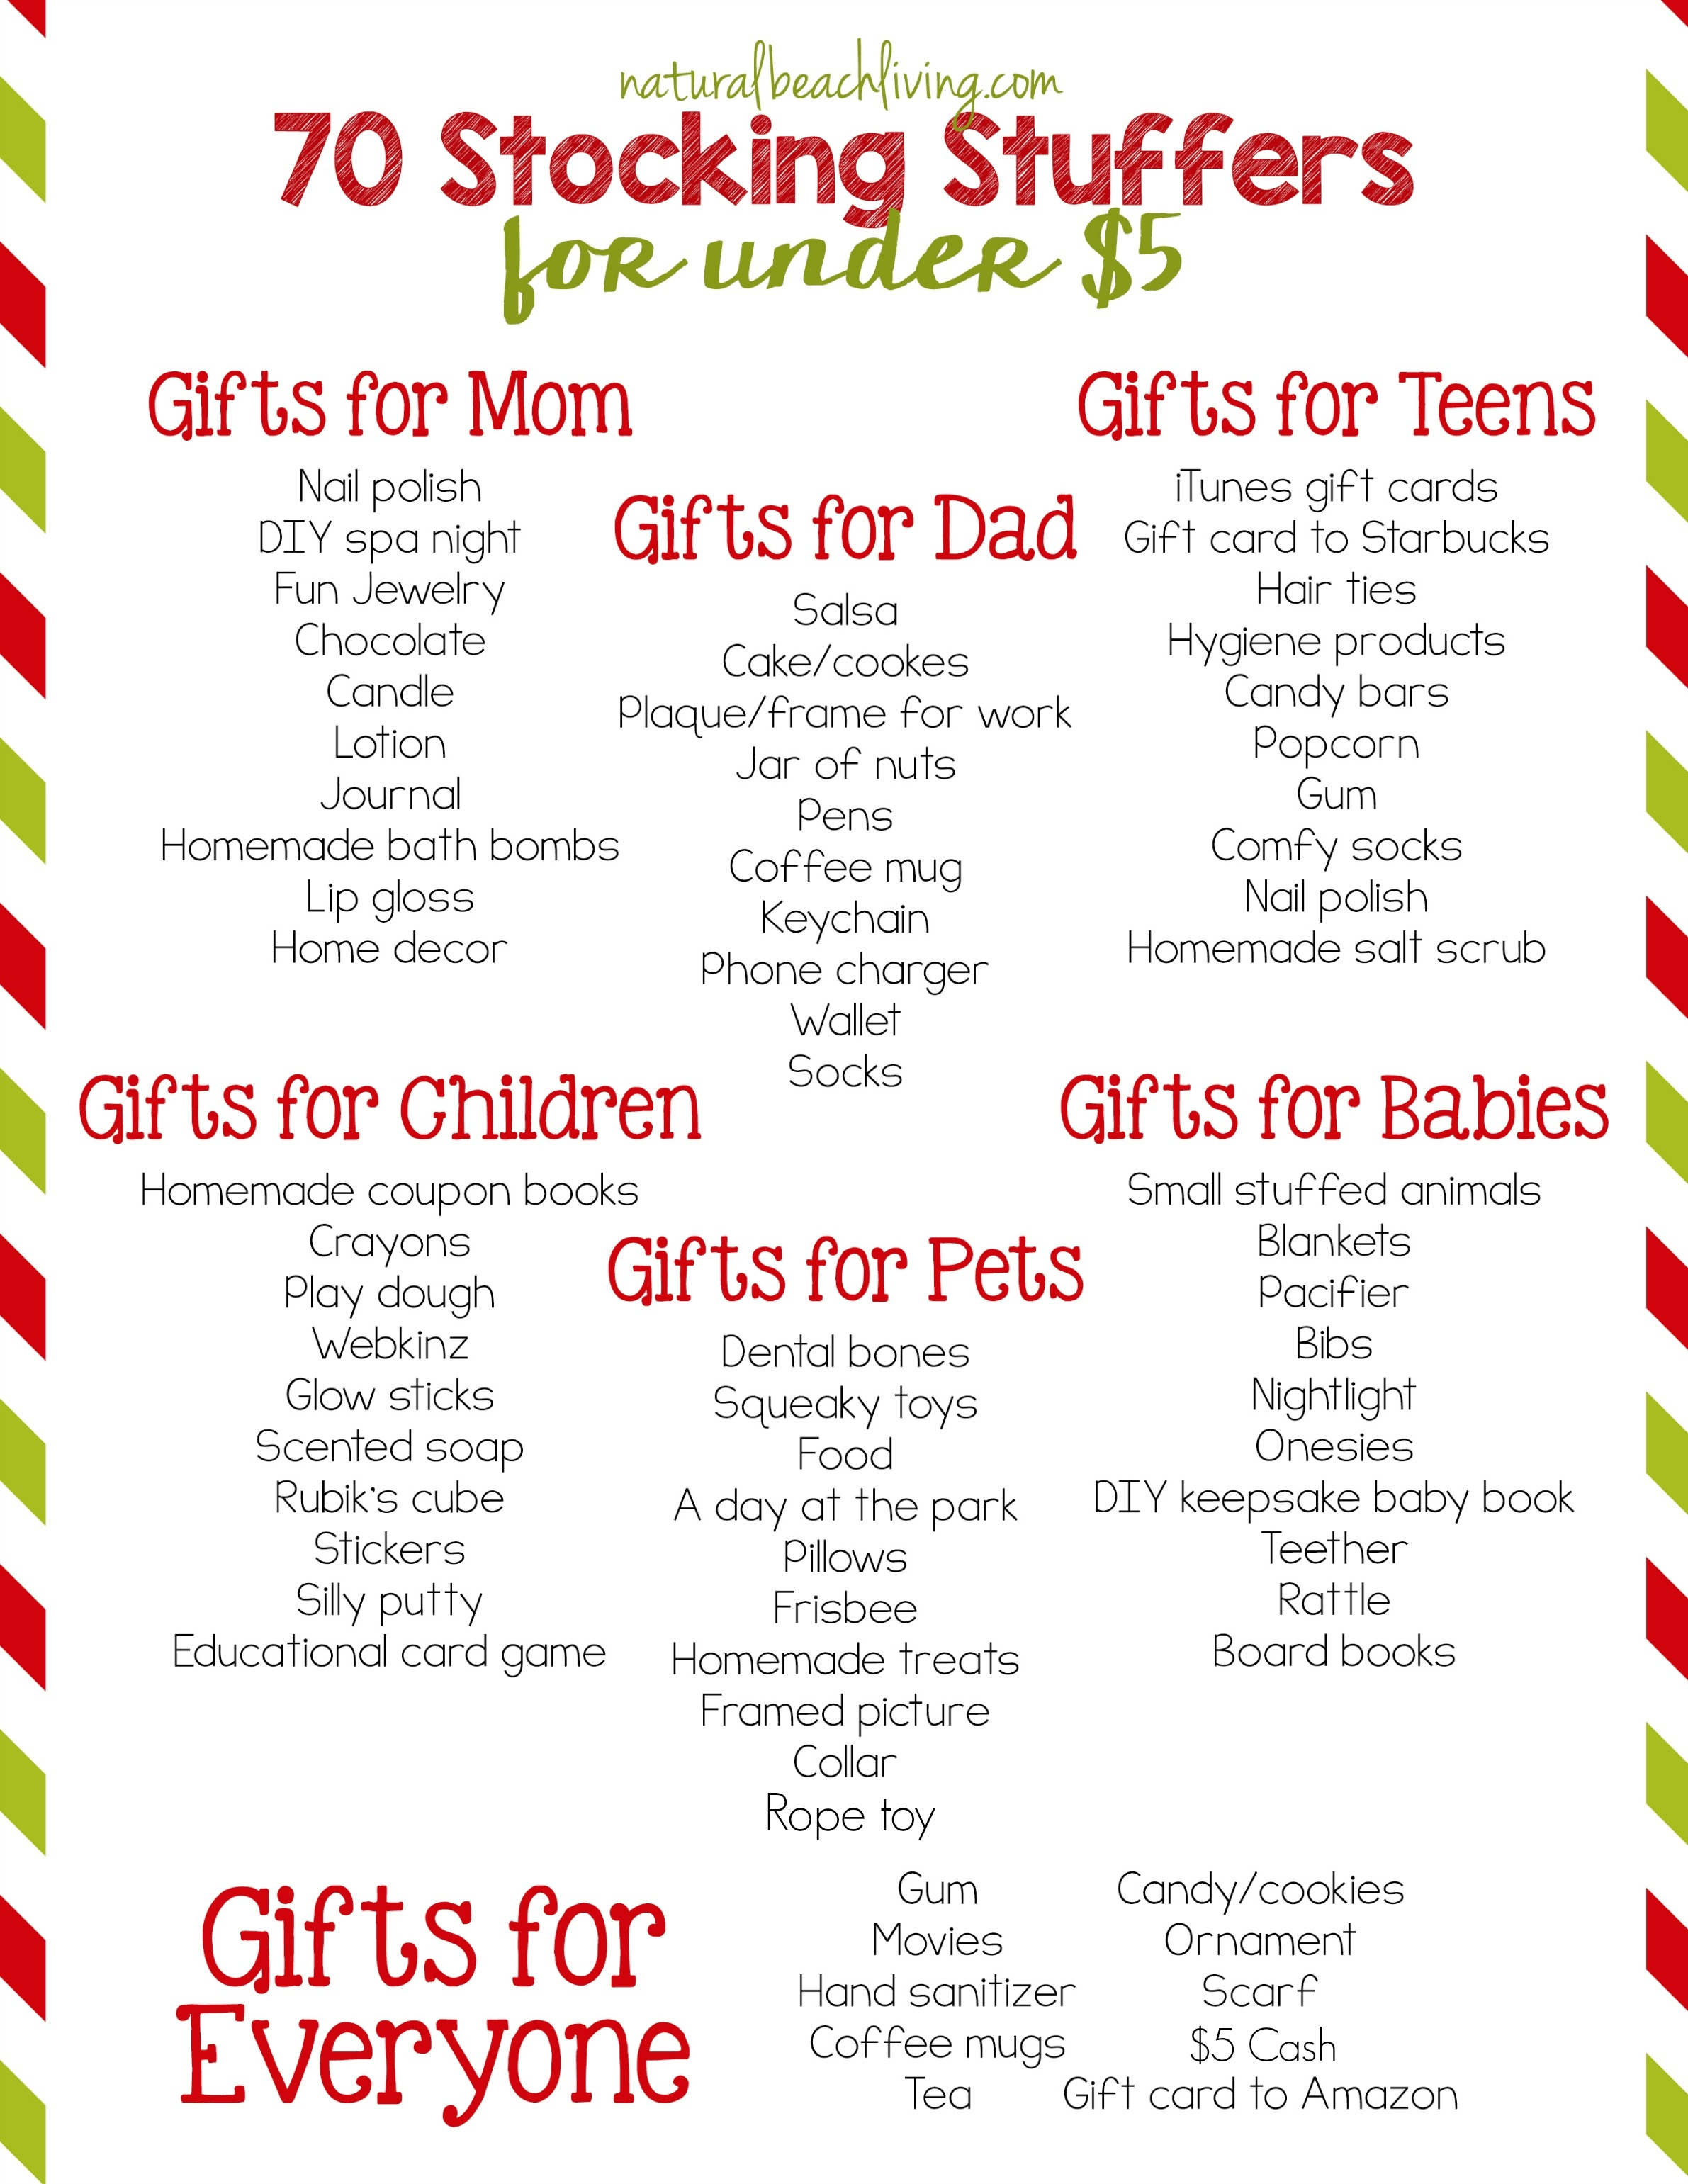 80 Super Stocking Stuffers For Under $5 - Natural Beach Living - Free Printable Stocking Stuffers